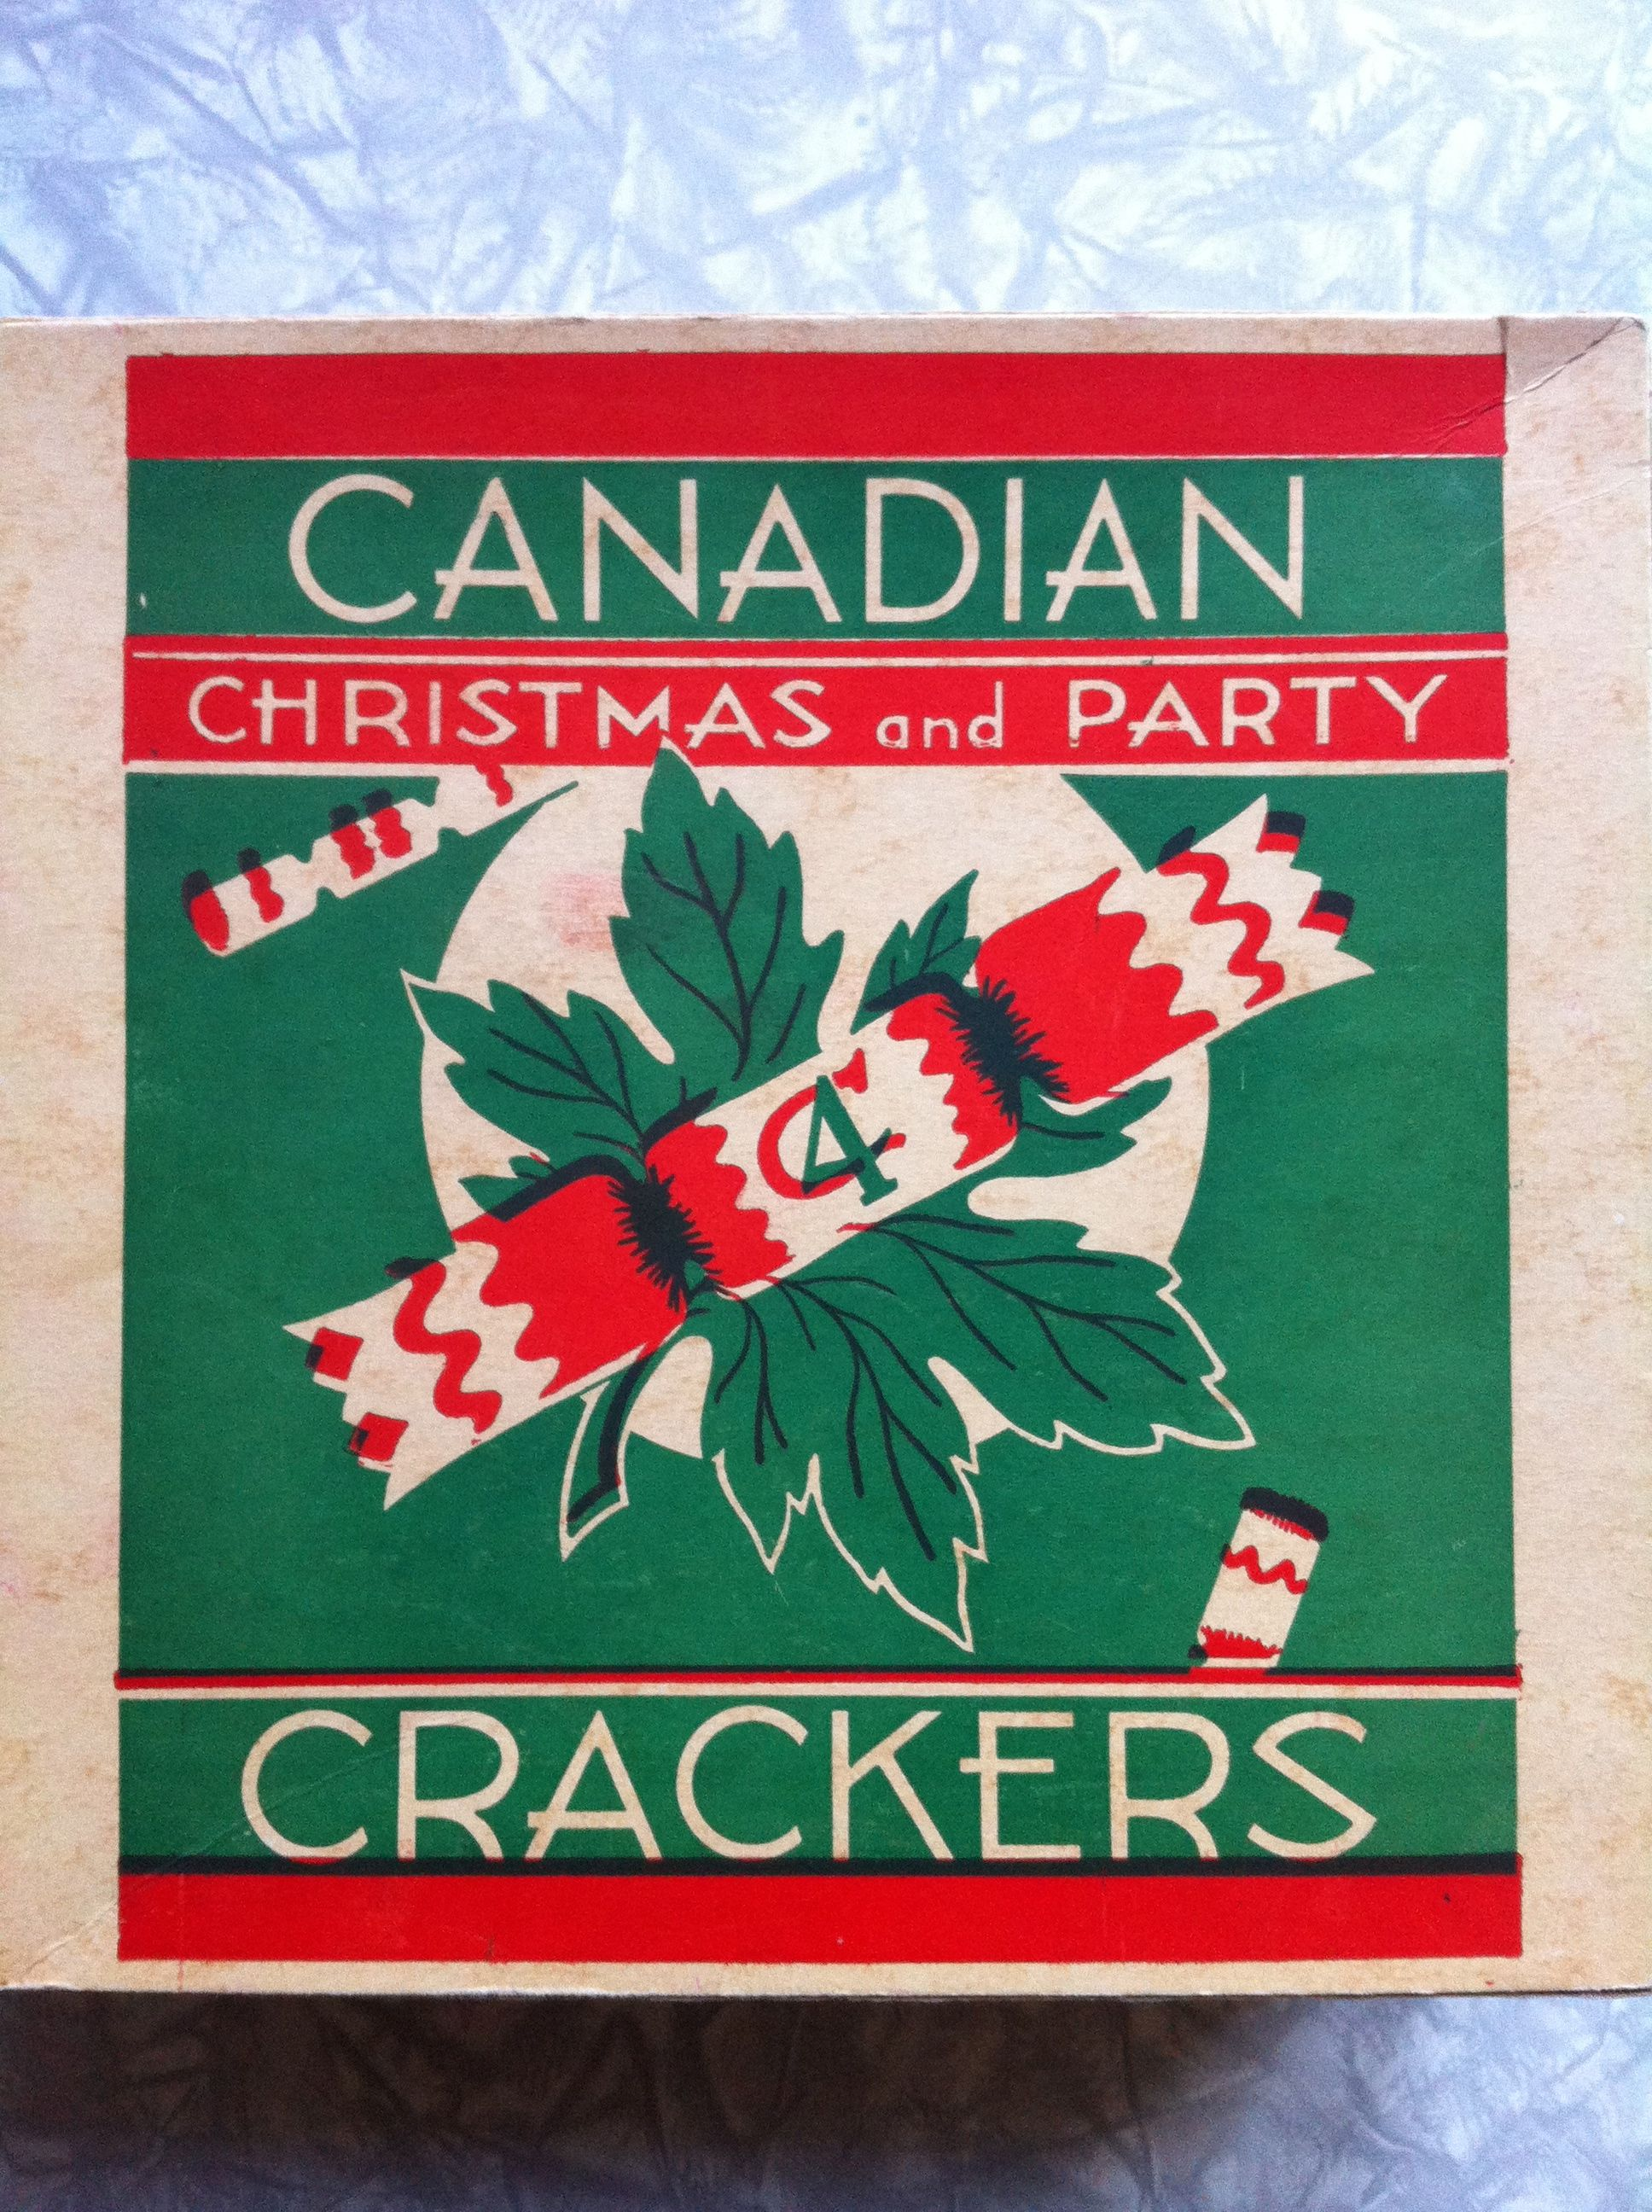 Vintage Canadian Christmas cracker box. Canadian